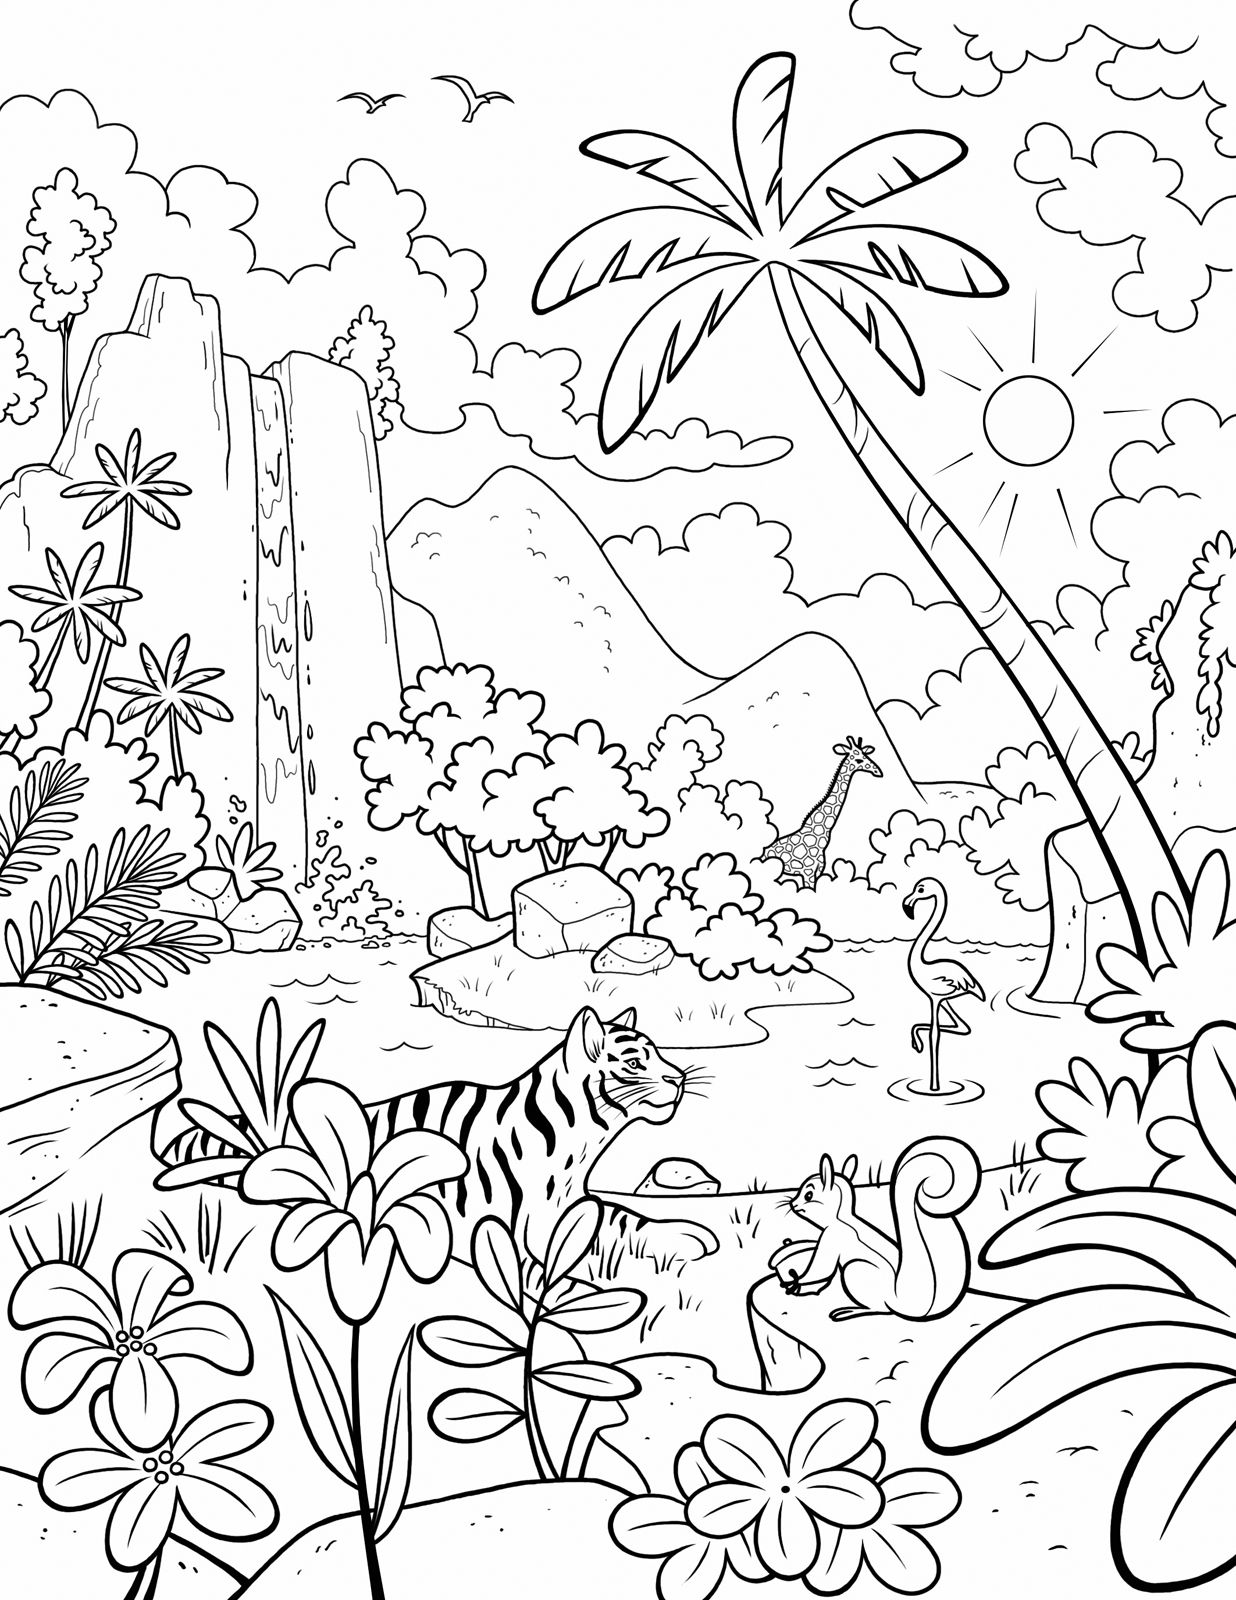 Our beautiful world! A LDS Primary coloring page from lds.org ...